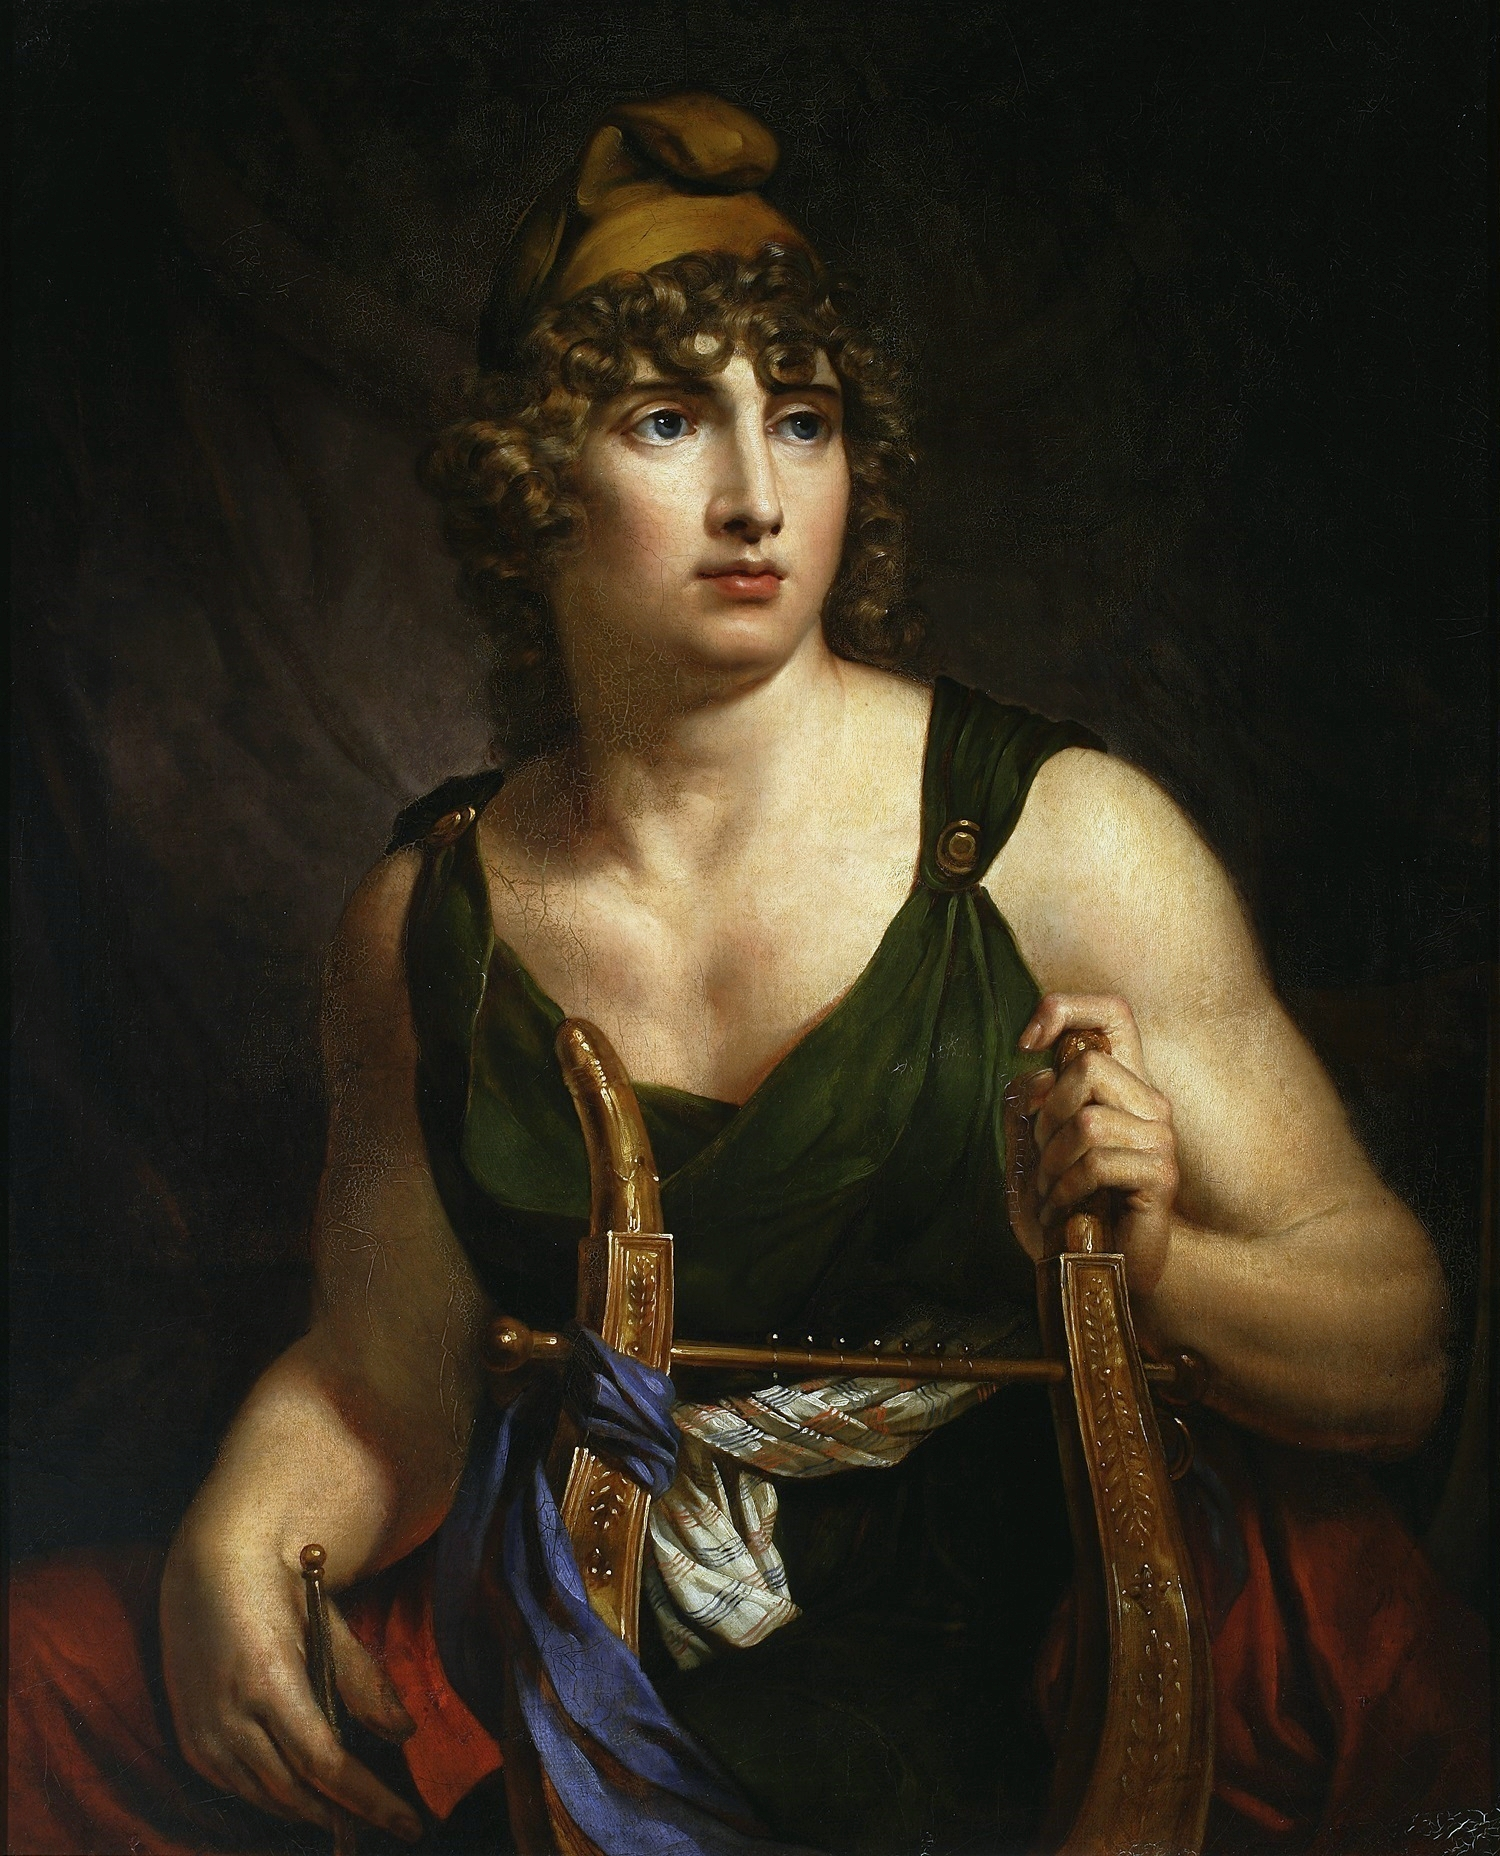 the violation of the codes of chivalry by king menelaus king agamemnon and prince paris in the movie